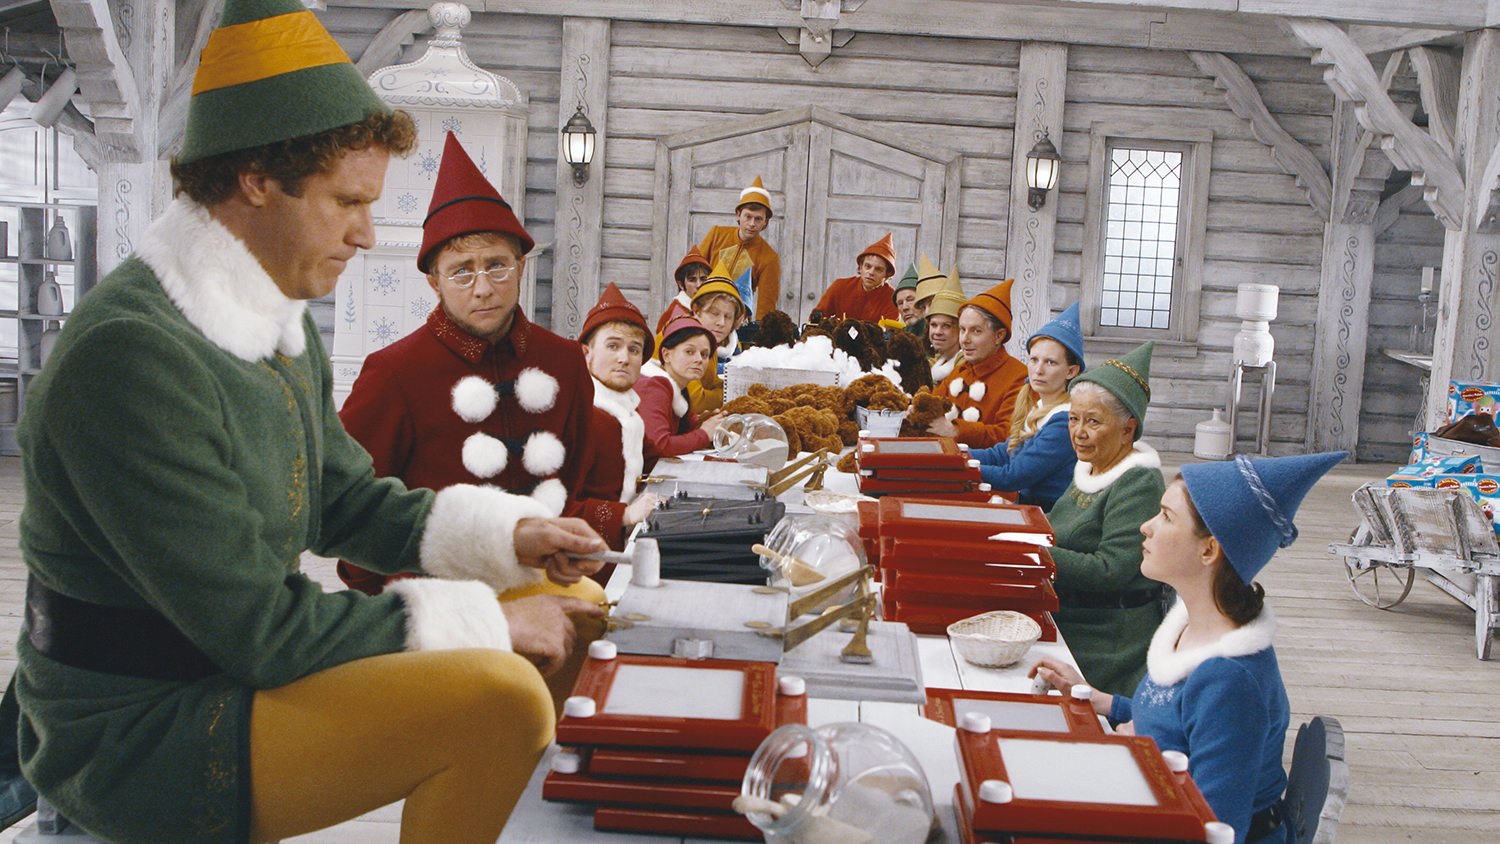 Christmas movie screenings for families in NYC